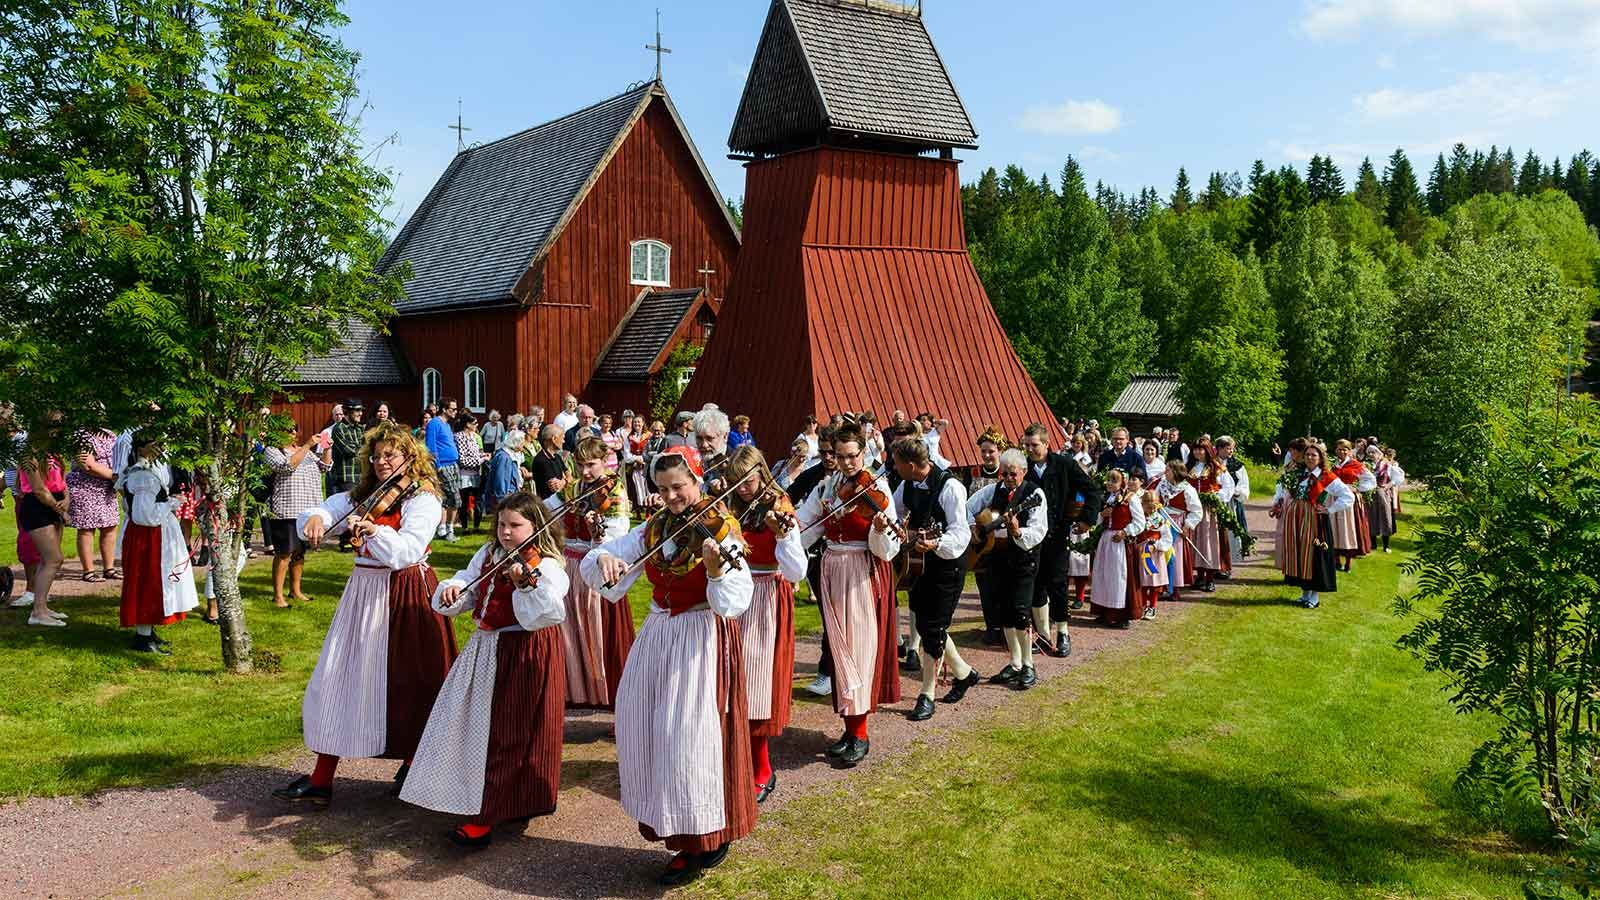 People in Sweden celebrating the Midsummer with music and traditional costumes.